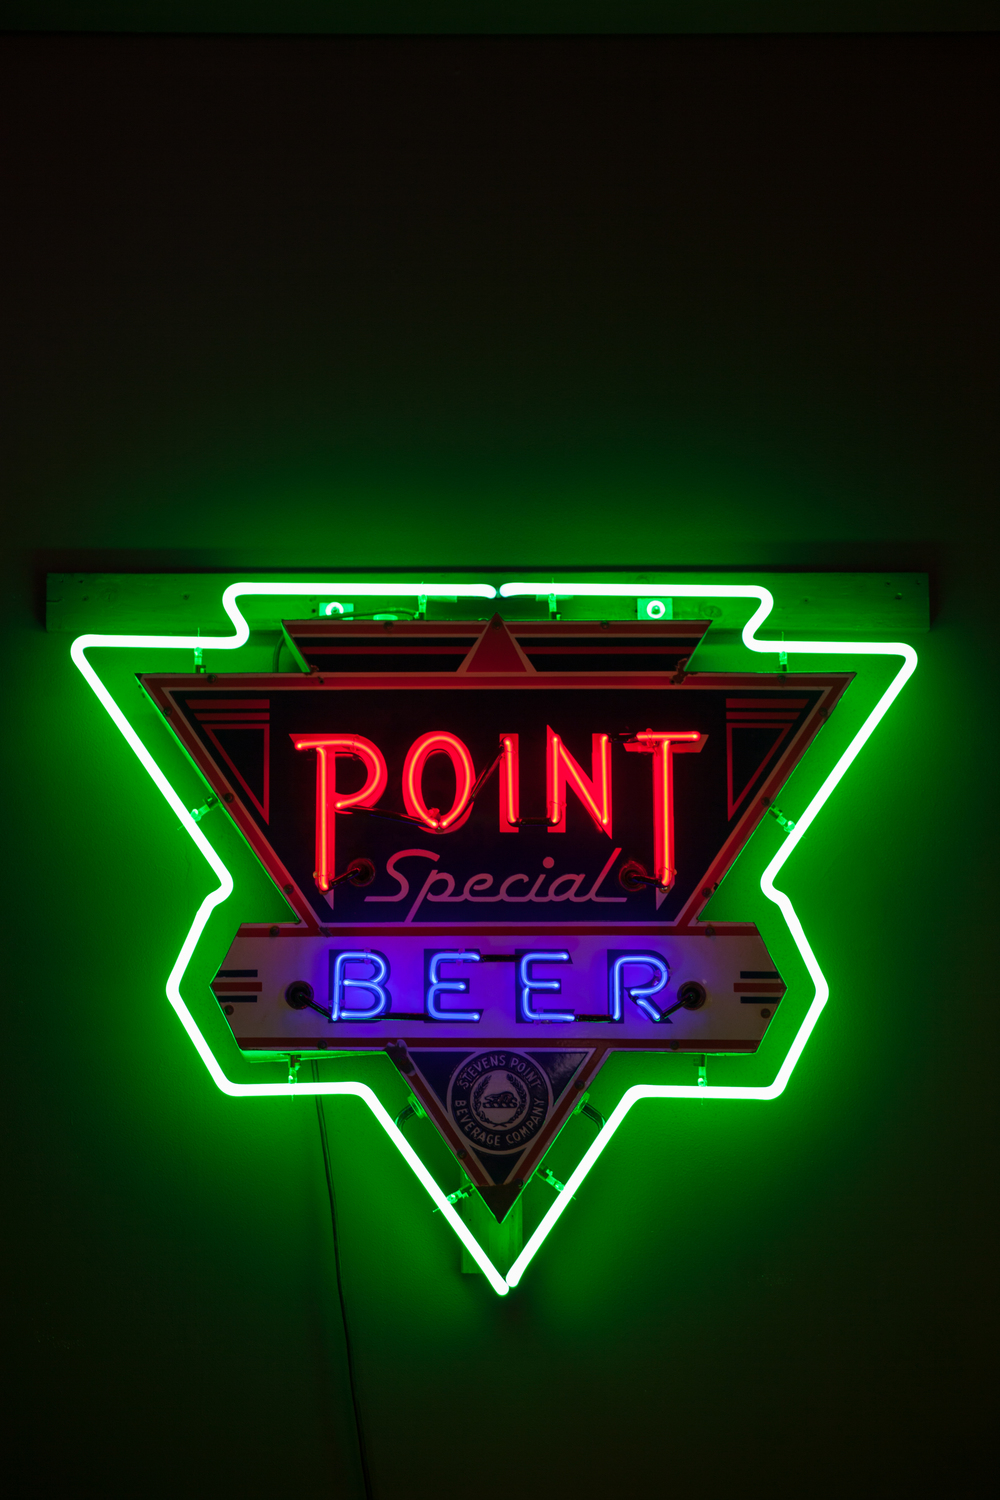 Point Special Beer - Neon & Porcelain